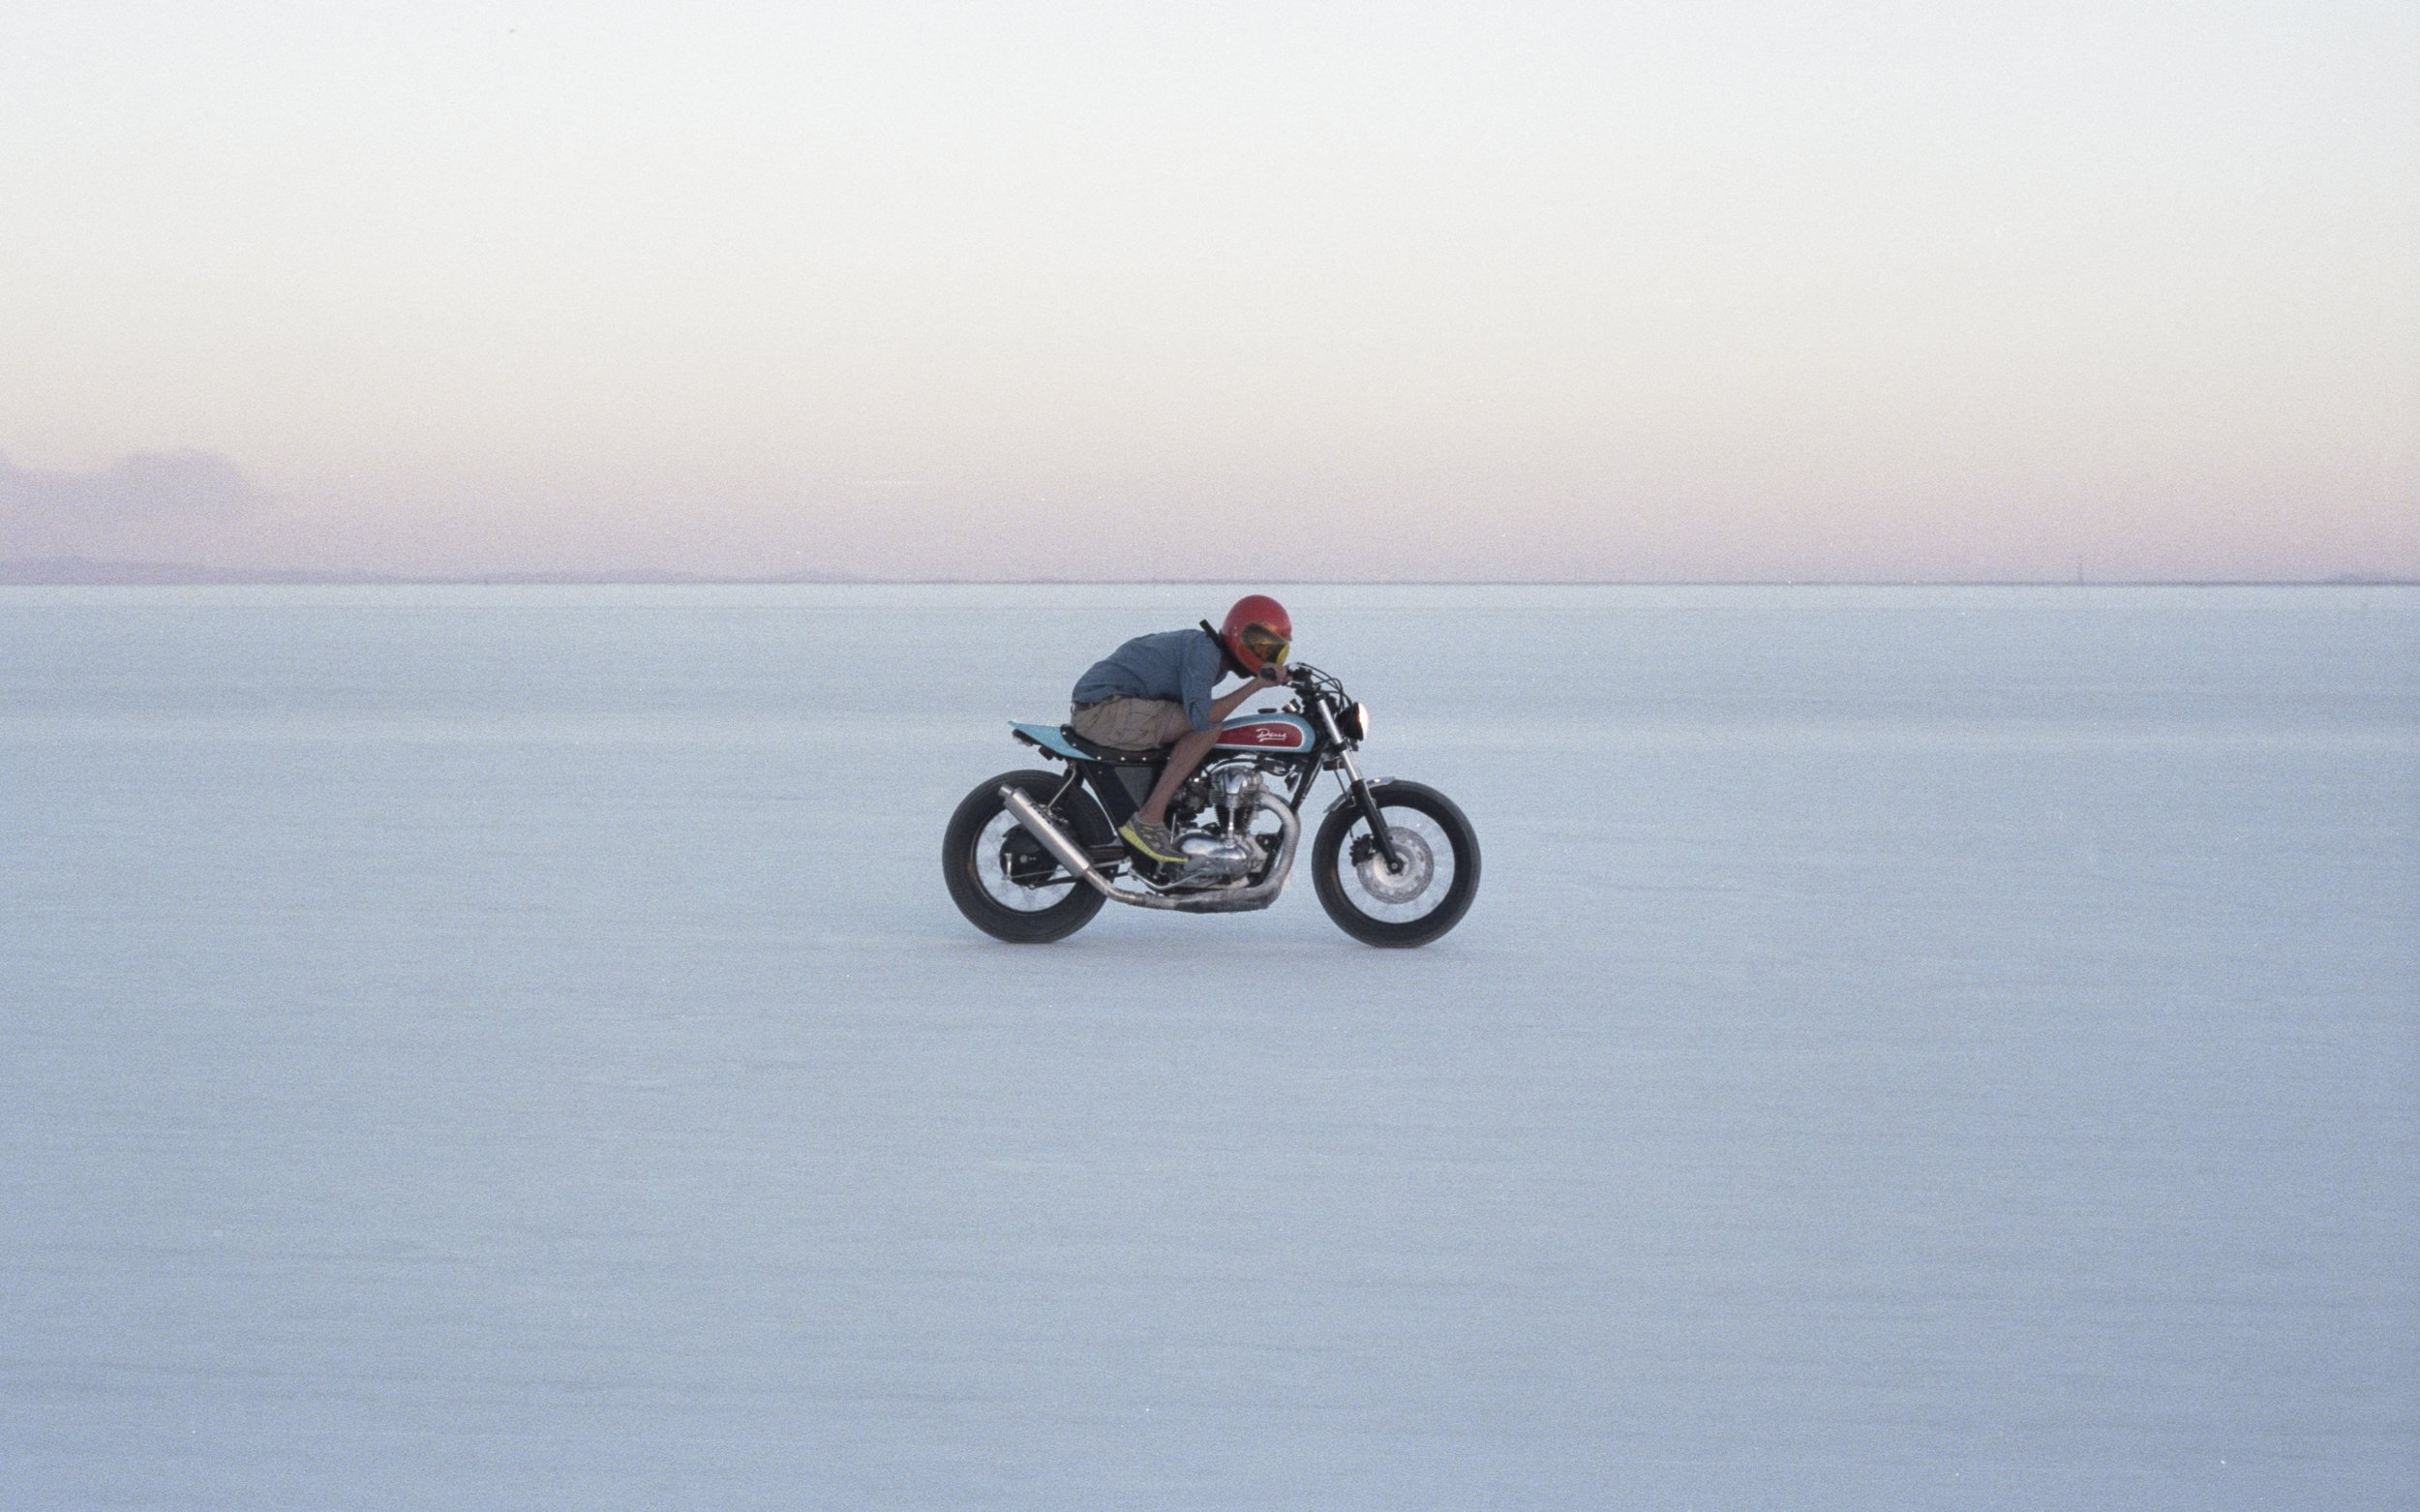 1 - DEUS Kawasaki W650 on the Bonneville Salt flat, Utah_resultat.jpg